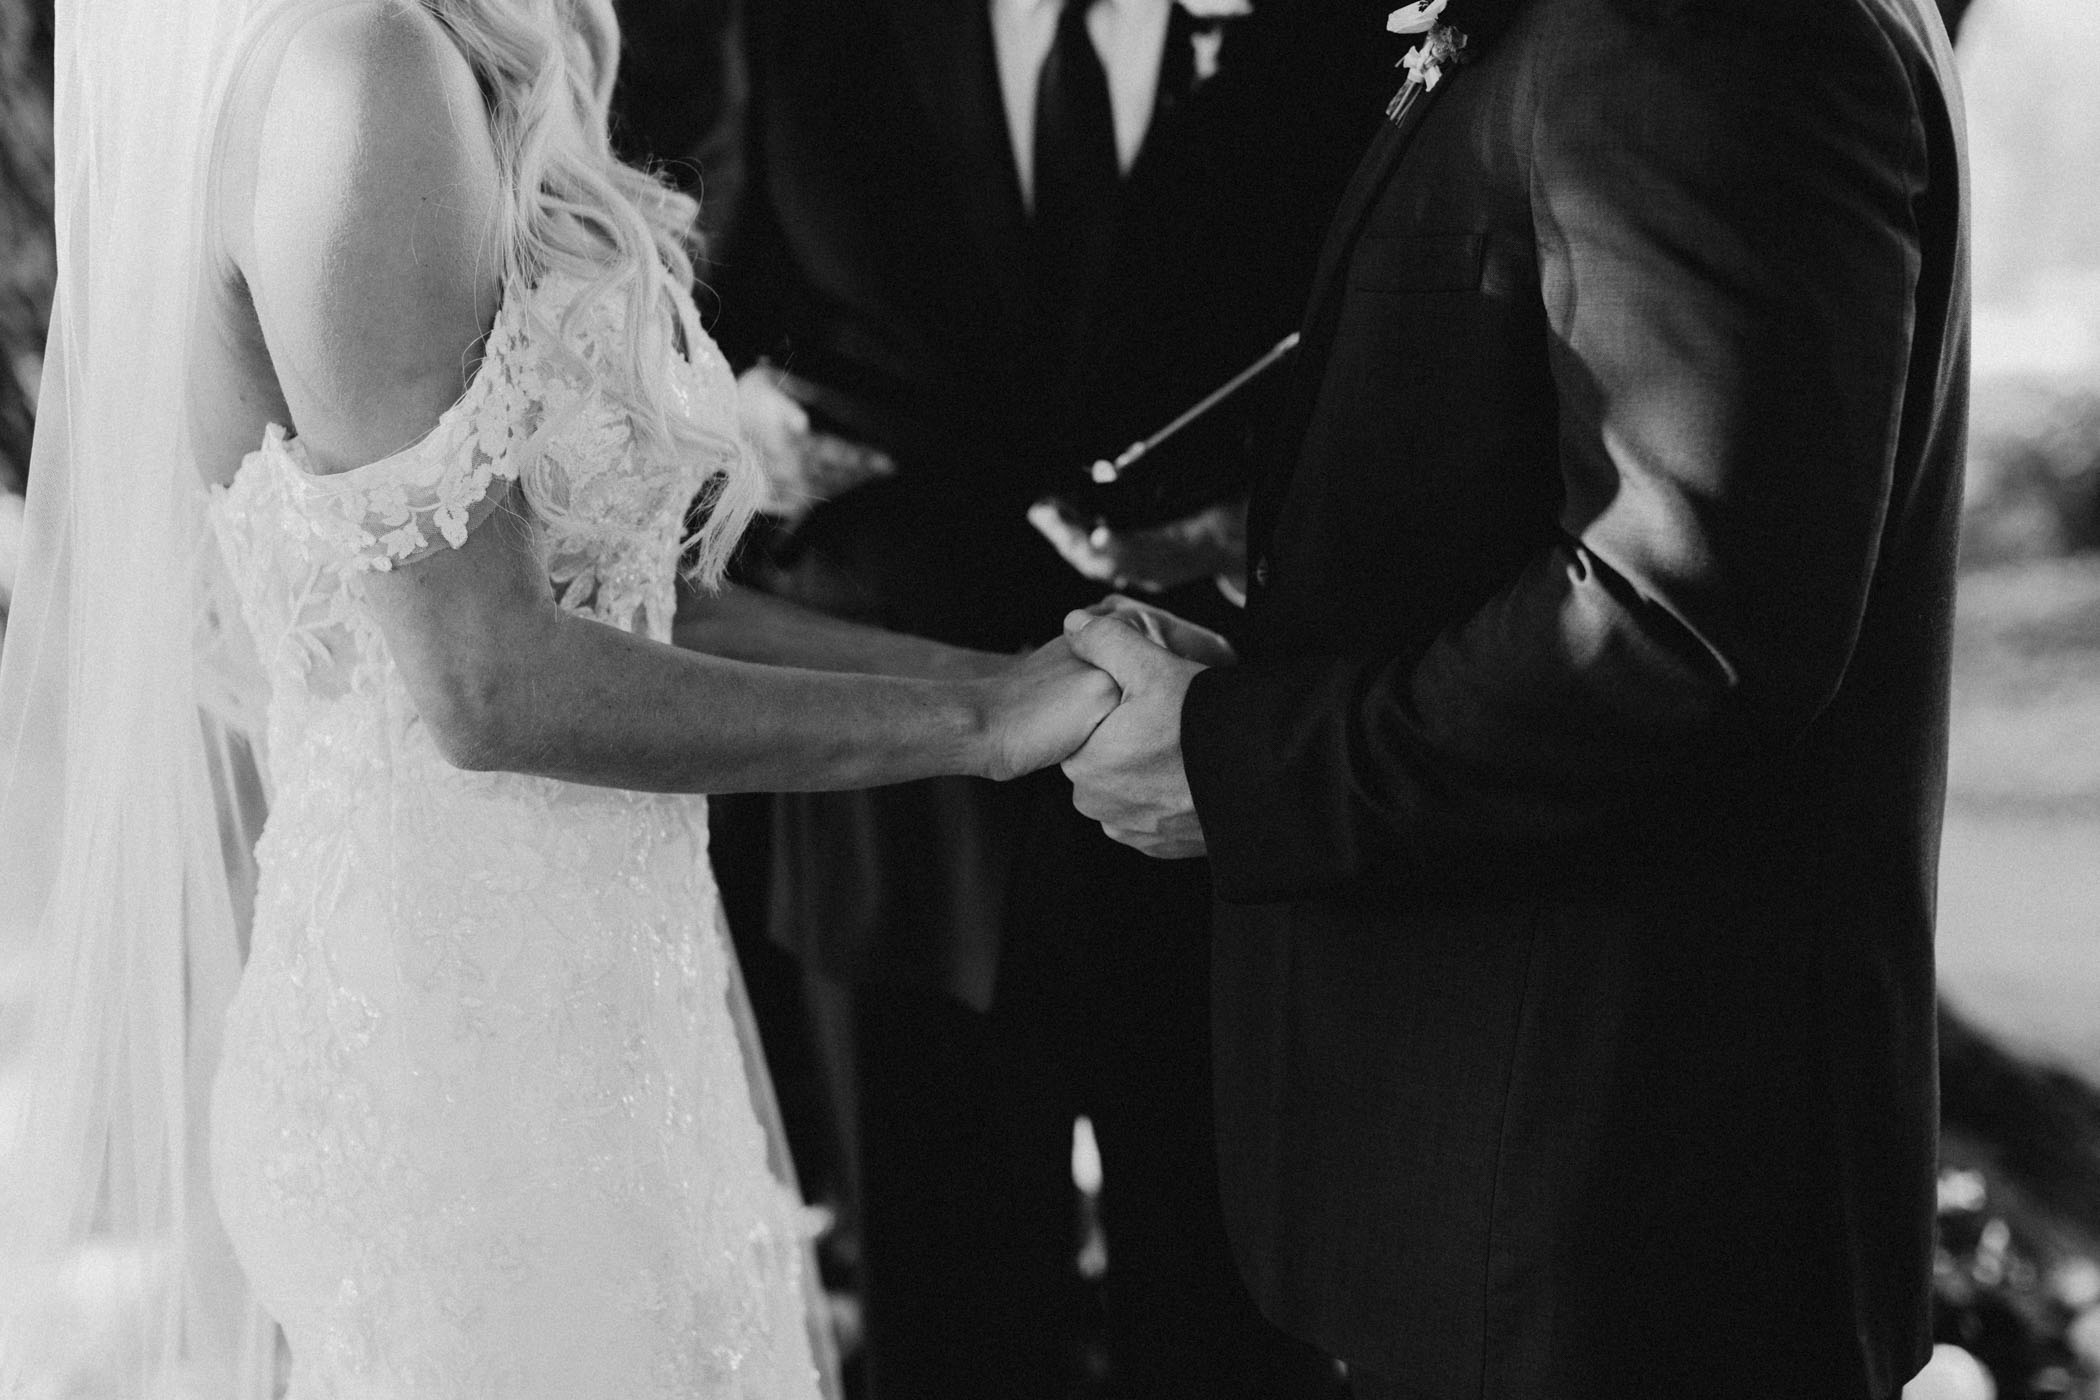 bride and groom holding hands after exchanging rings at ceremony